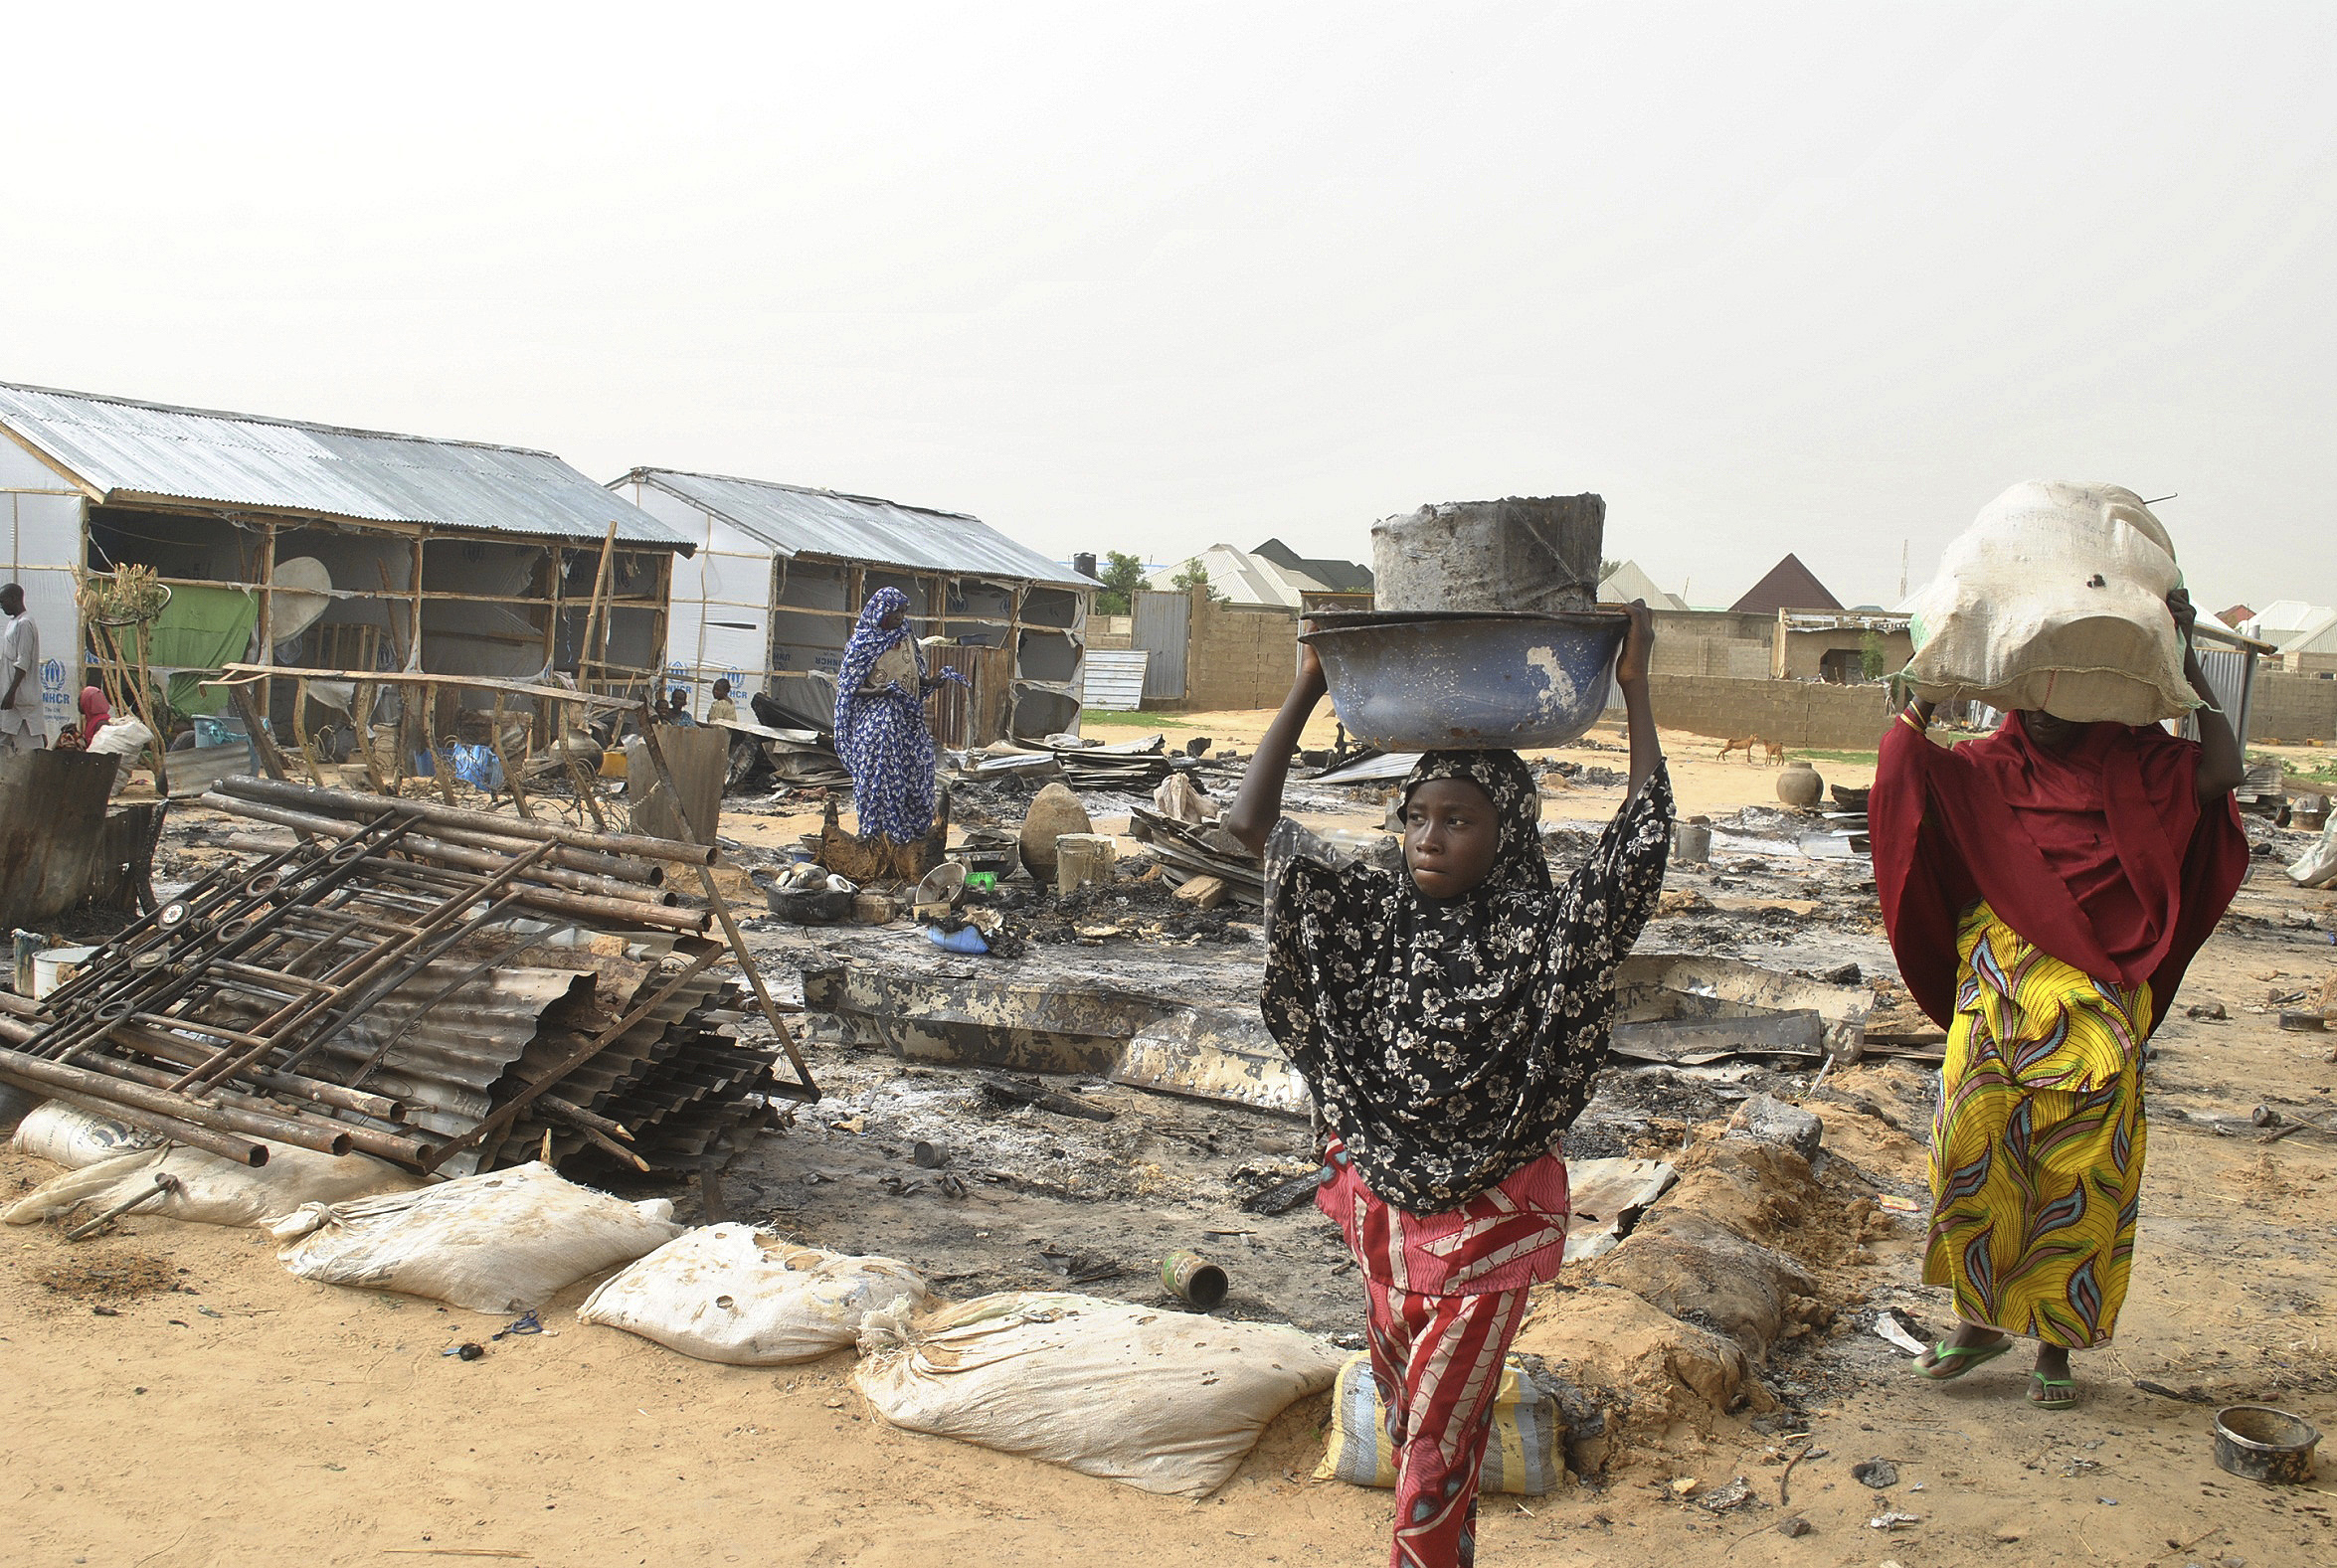 People walk through the debris at a camp for people displaced following an explosion by Islamist extremists, in Maiduguri, Nigeria, June  8, 2017.